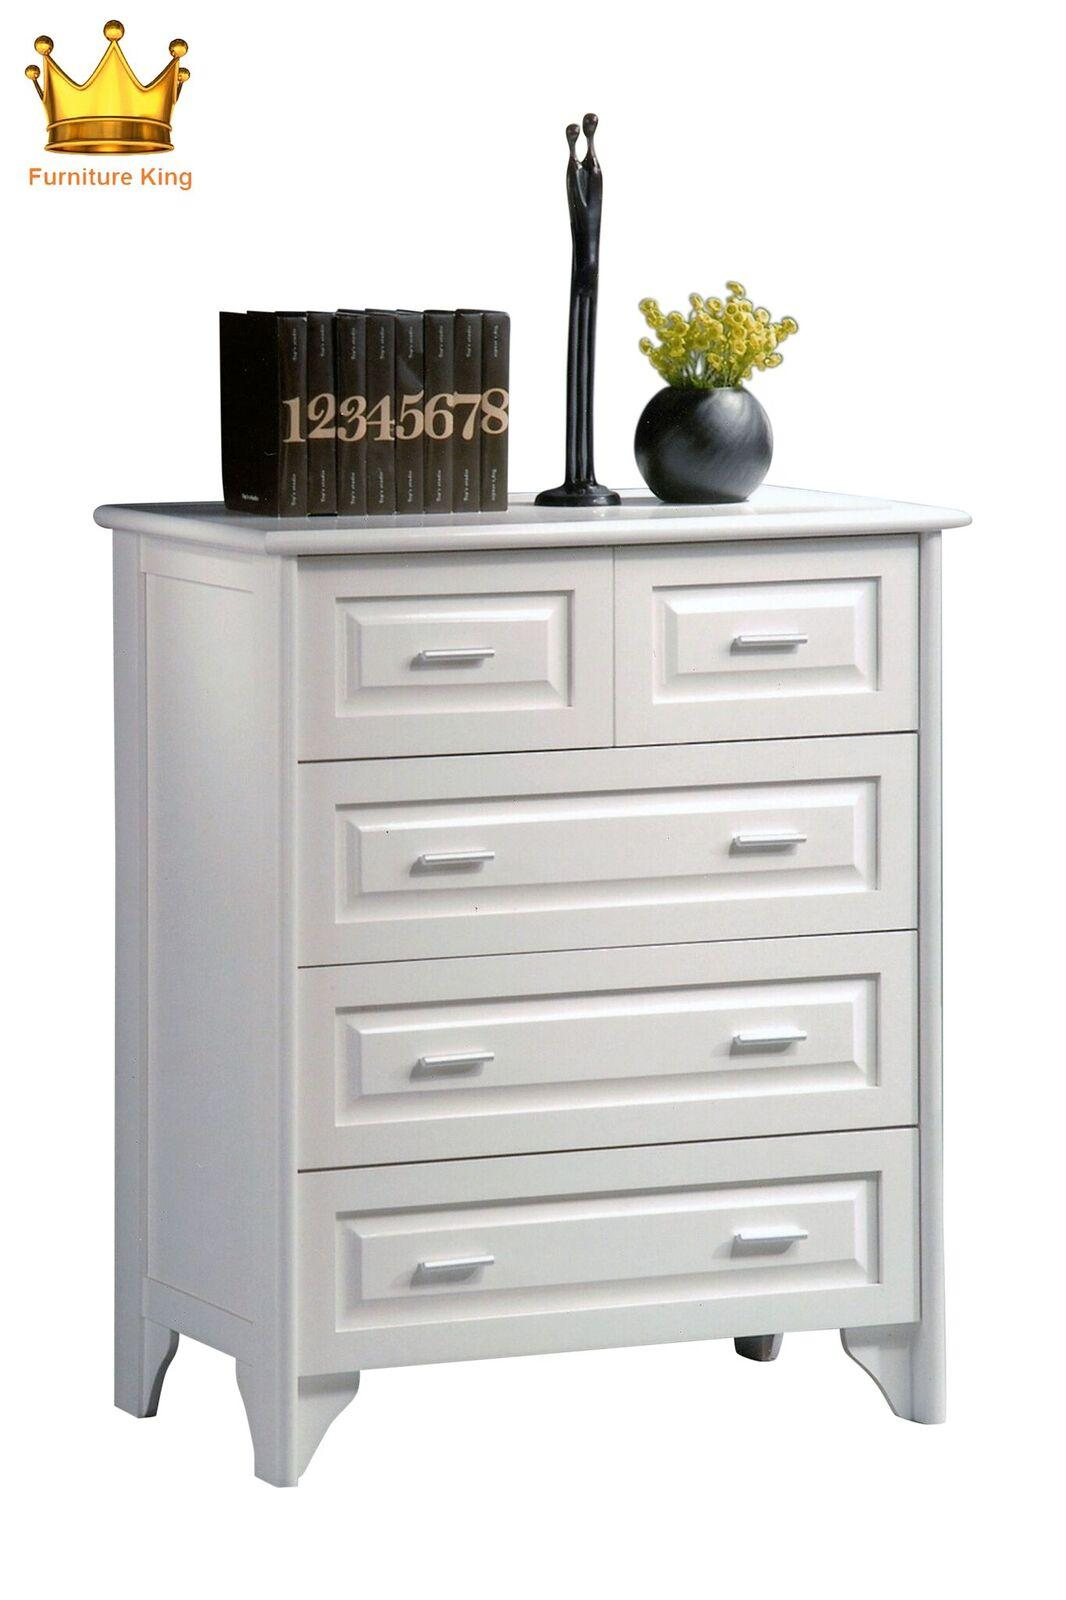 Regin Chest Of Drawers ★Storage Closet Organizer ★Wardrobe ★Home Organization ★PP ★Stacking